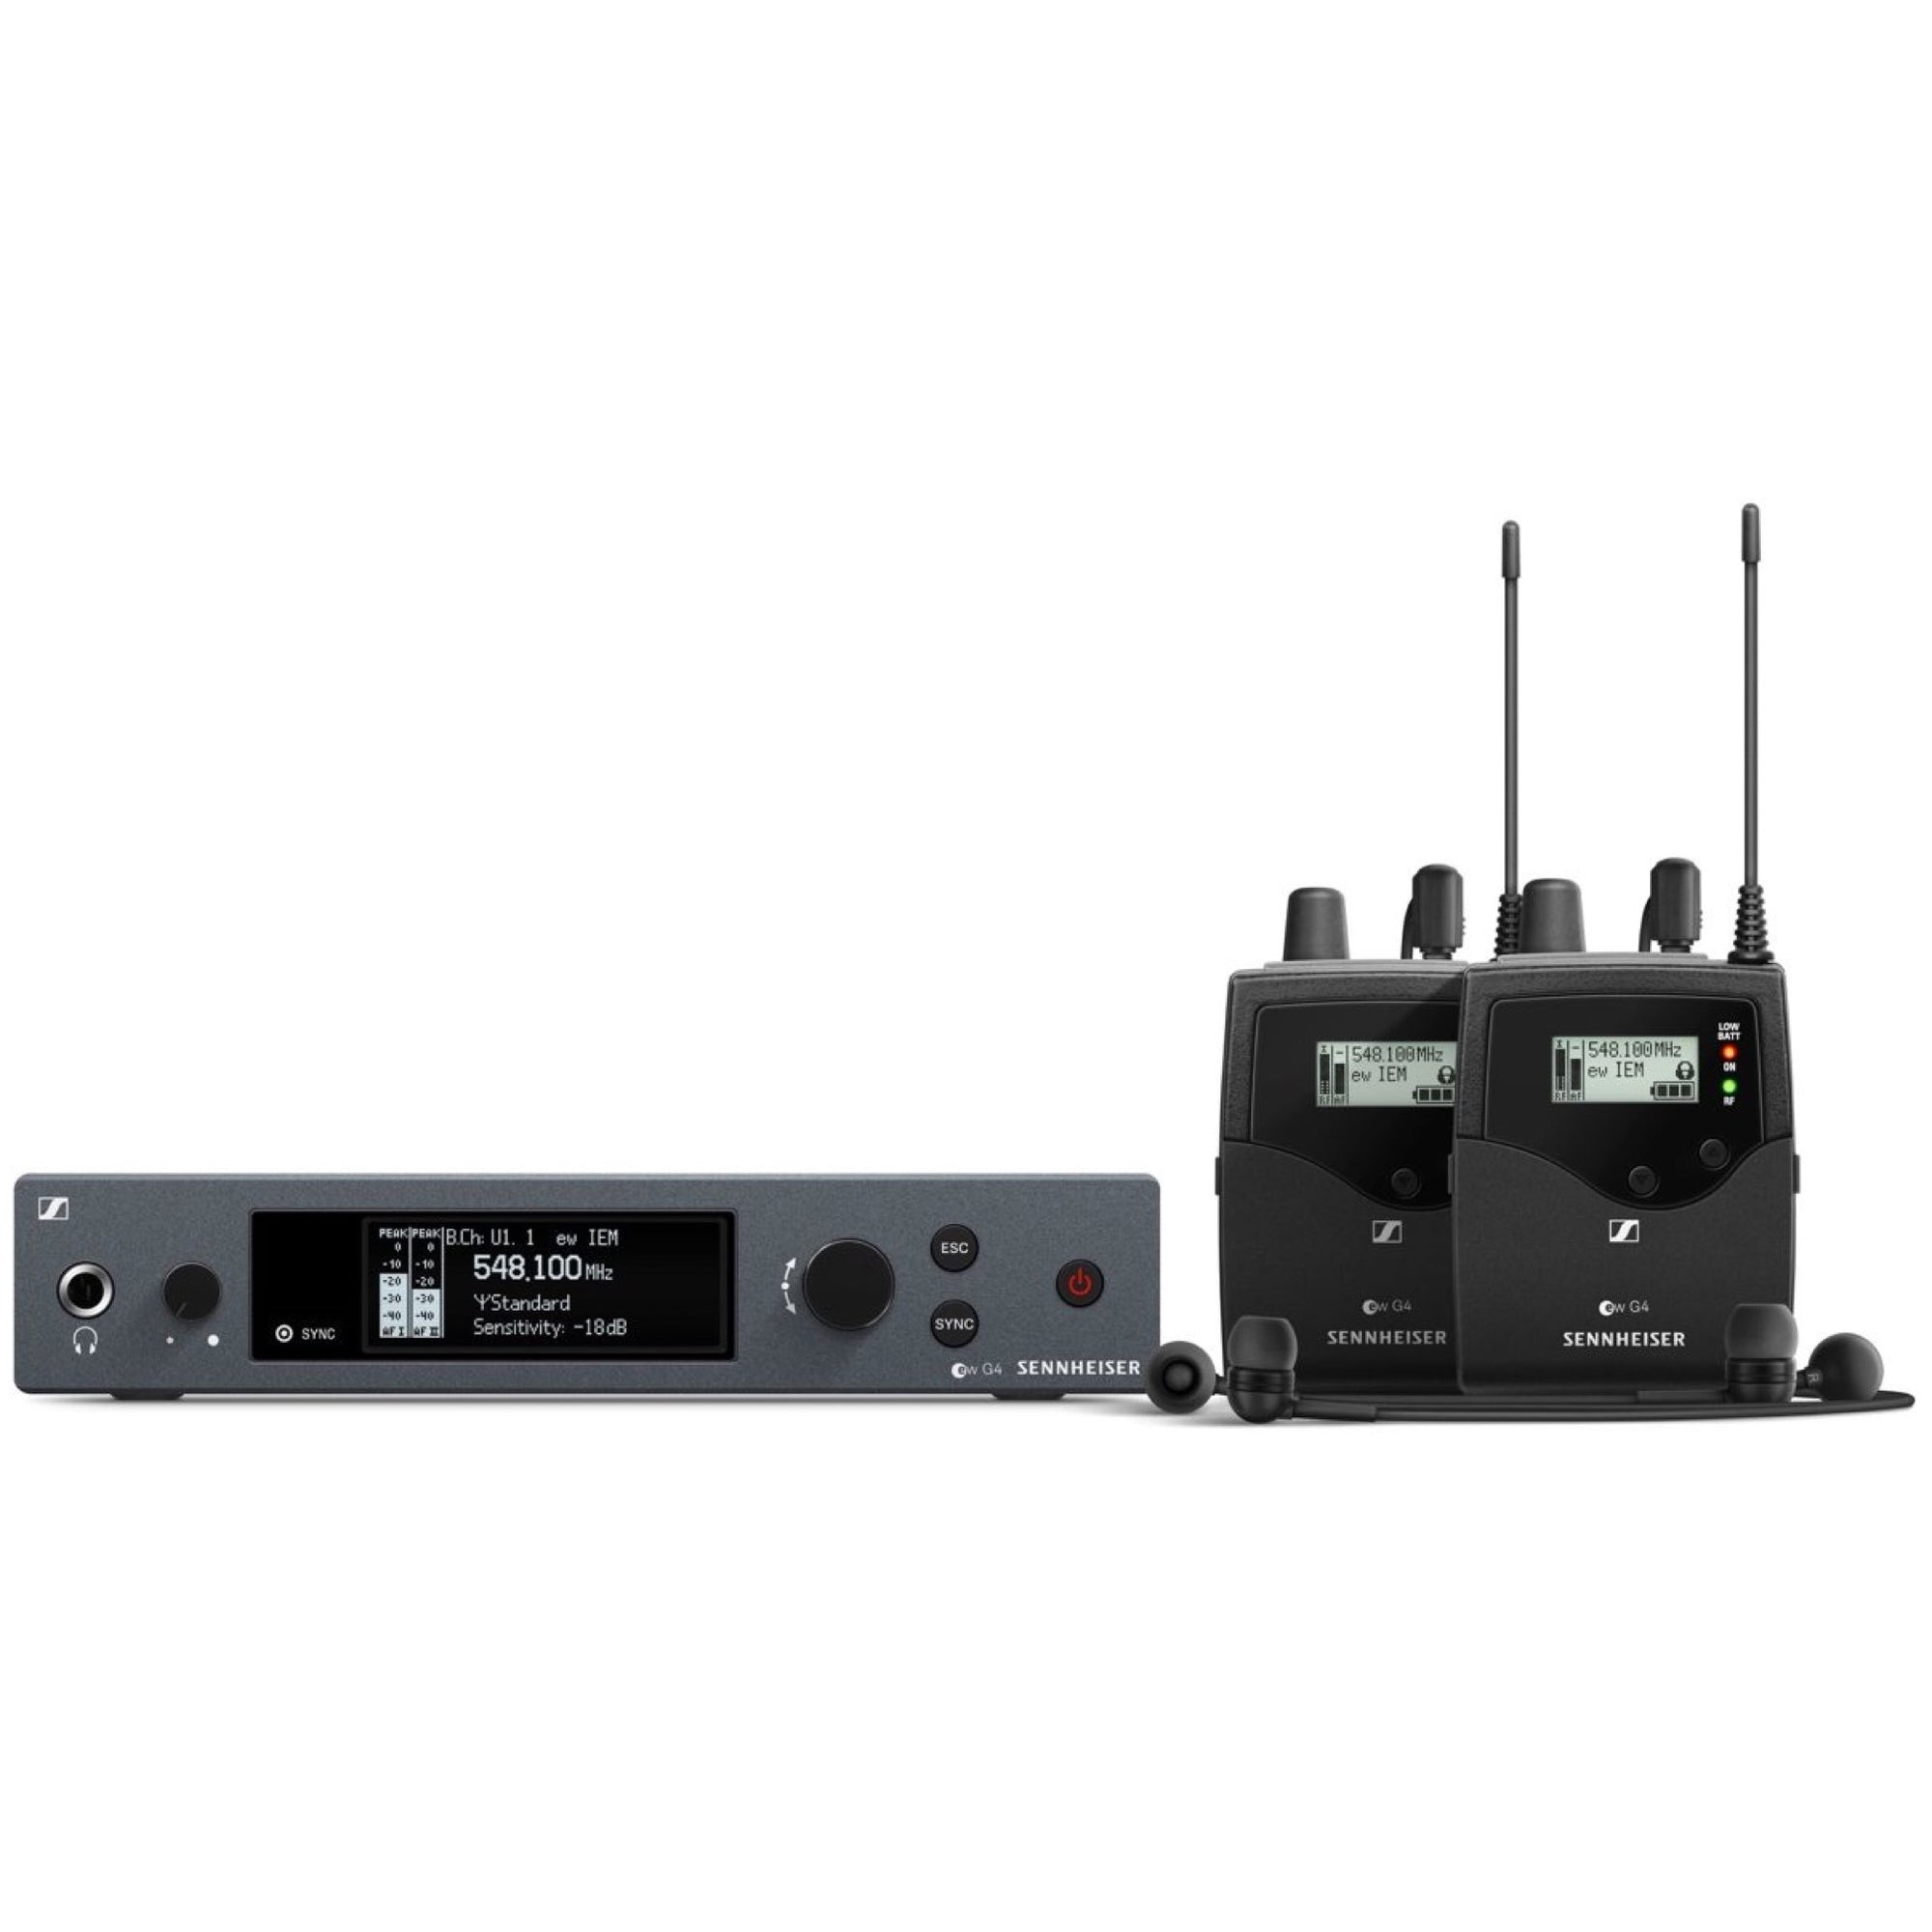 Sennheiser EW IEM G4 TWIN In-Ear Monitor System, Band G (566-608 MHz)